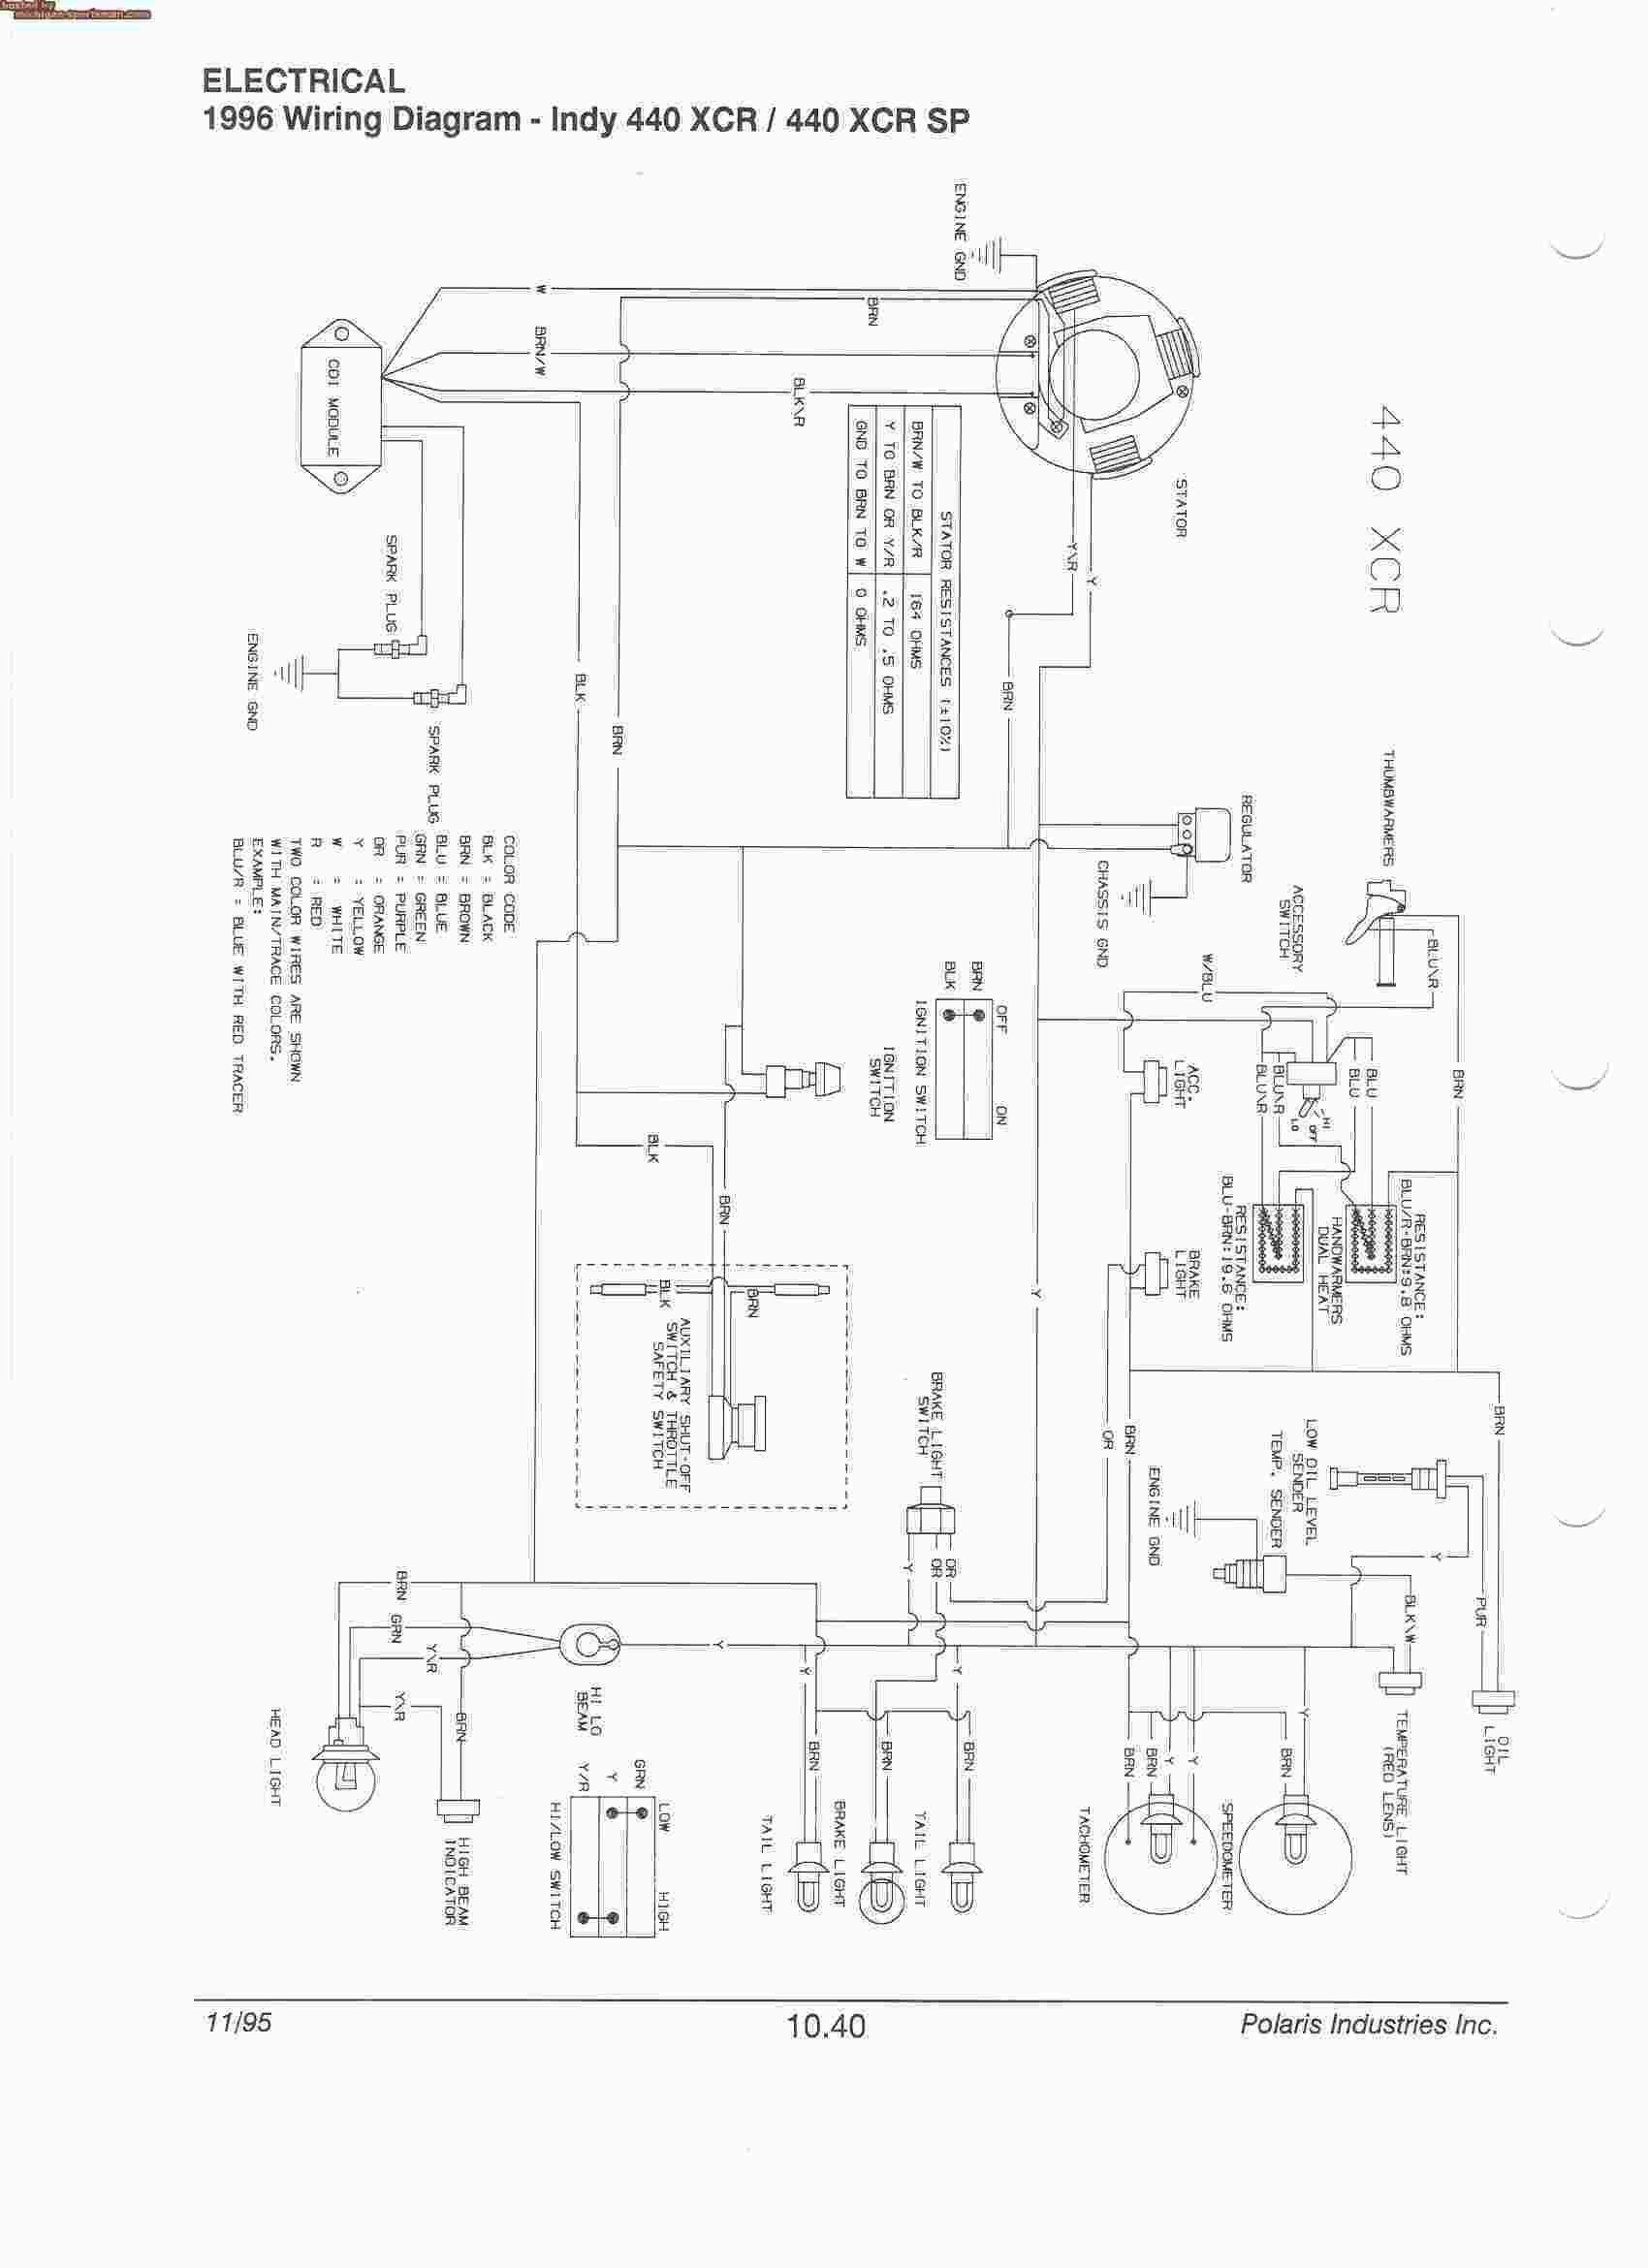 Polaris 440 Wire Diagram - Schematics Wiring Diagrams • on polaris edge x, polaris truck, polaris starfire, polaris cycles, polaris mv7, polaris ignition system, polaris schematics, cnc machine control diagram, polaris fuel pump, polaris roadster, polaris carburetor problems, polaris solenoid wiring, polaris transmission, polaris logo decal, polaris primary clutch, polaris renegade, polaris tools, polaris adventure, polaris carburetor adjustment, polaris mv850,